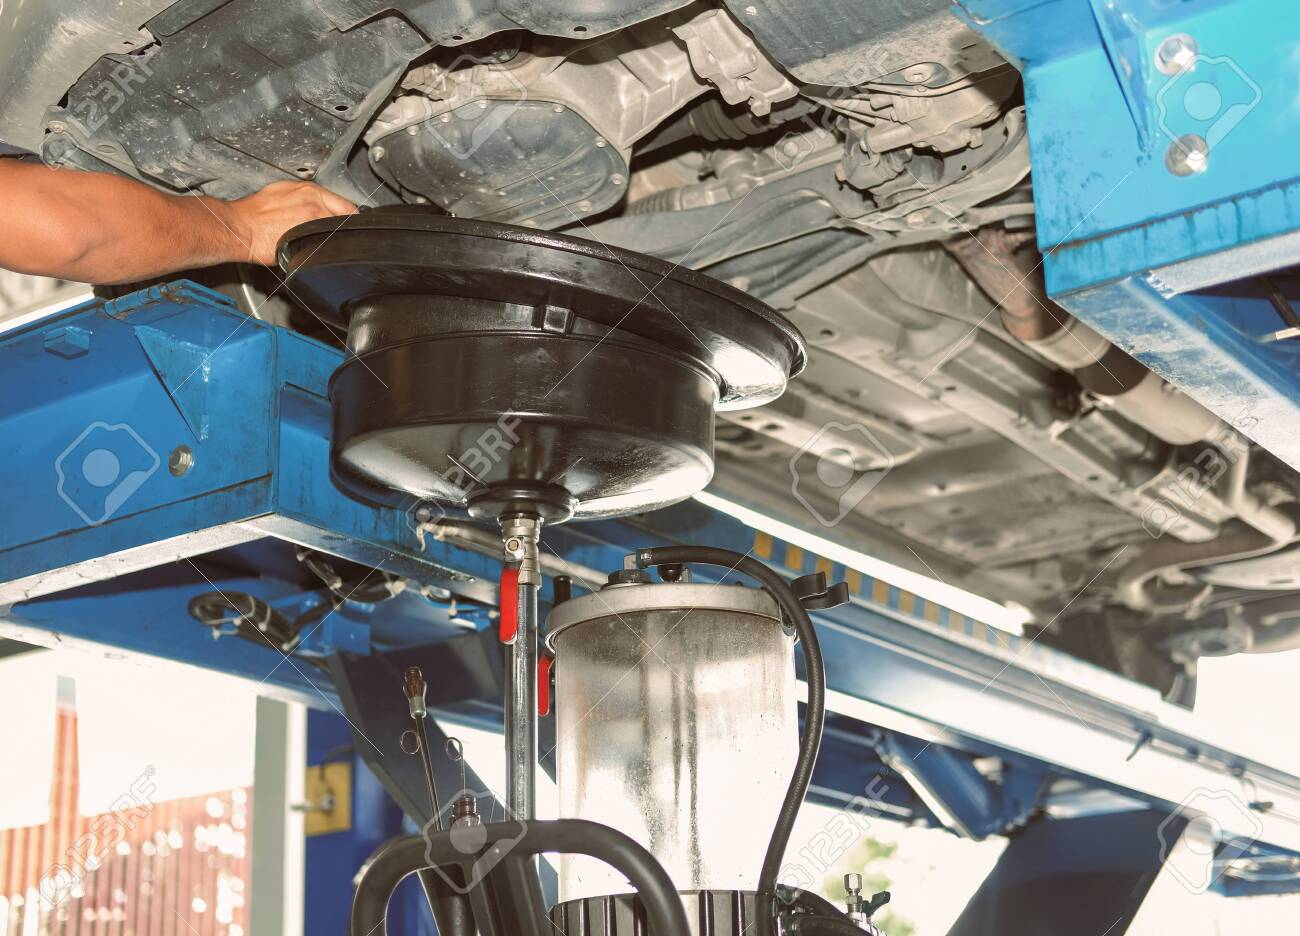 vehicle lift up by hydraulic for motor oil change and transmission inspection. changing engine oil in automobile repair service. maintenance and checkup in car workshop. - 134550242